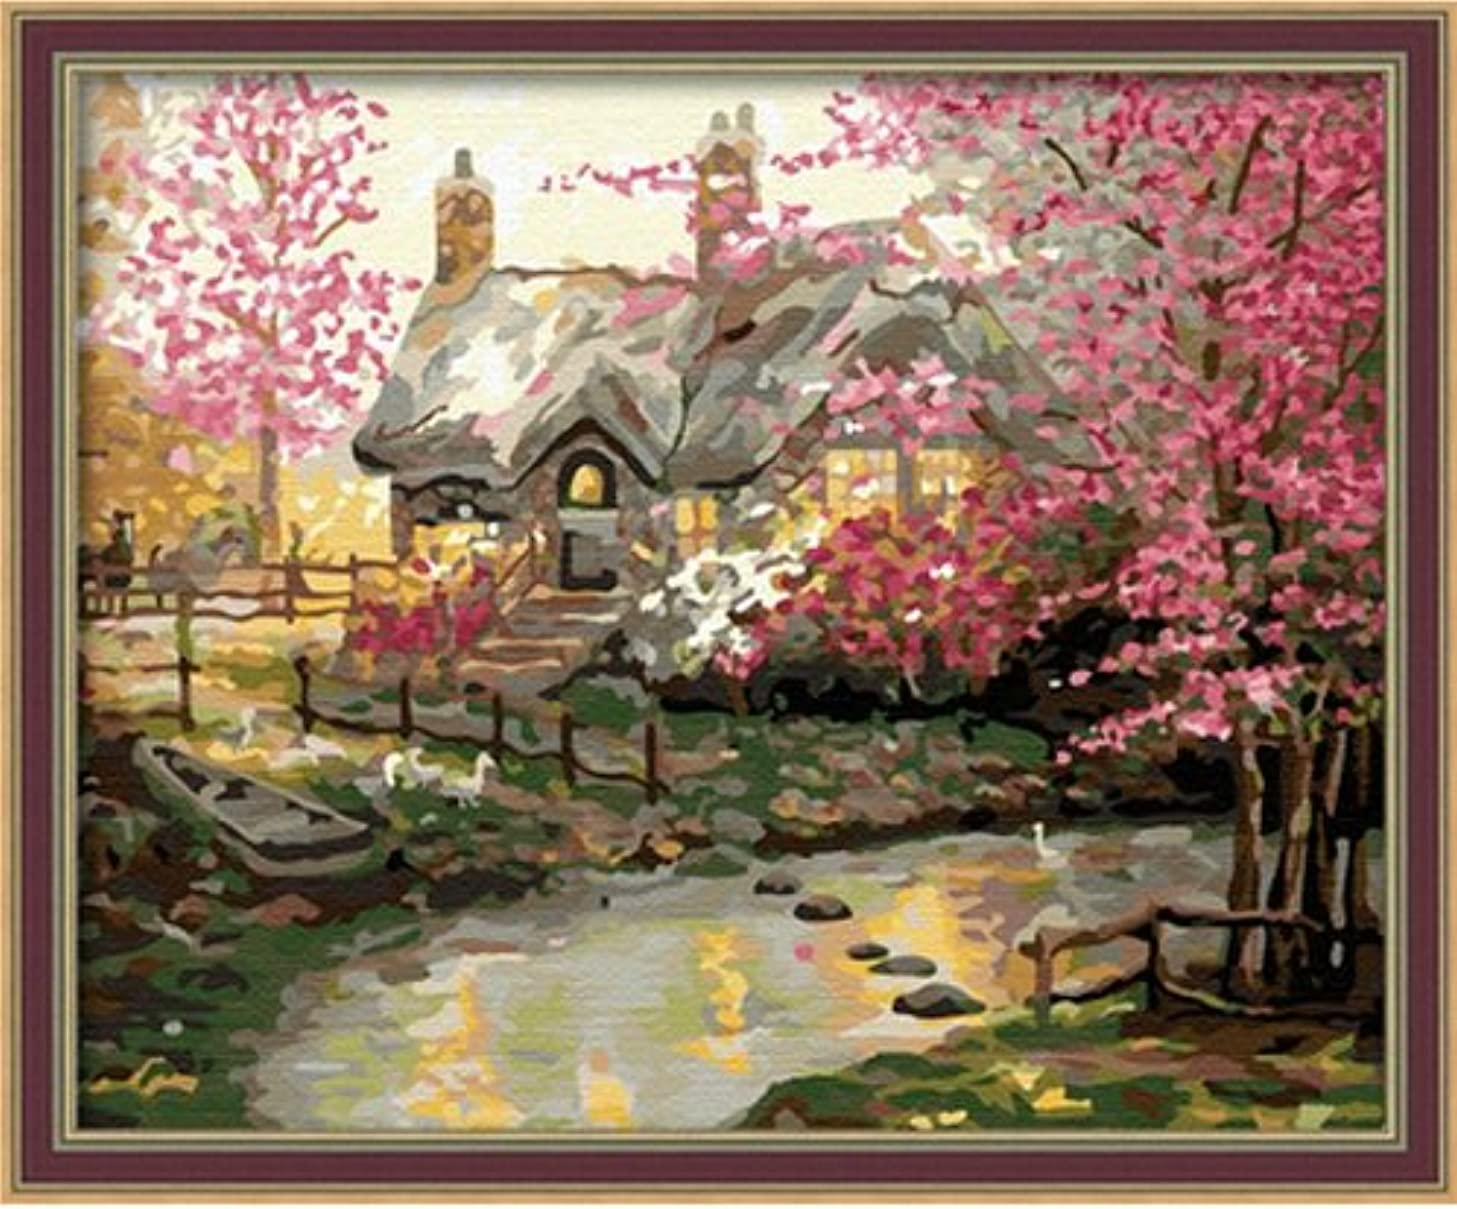 Diy oil painting, paint by number kit- My dream house 1620 inch.